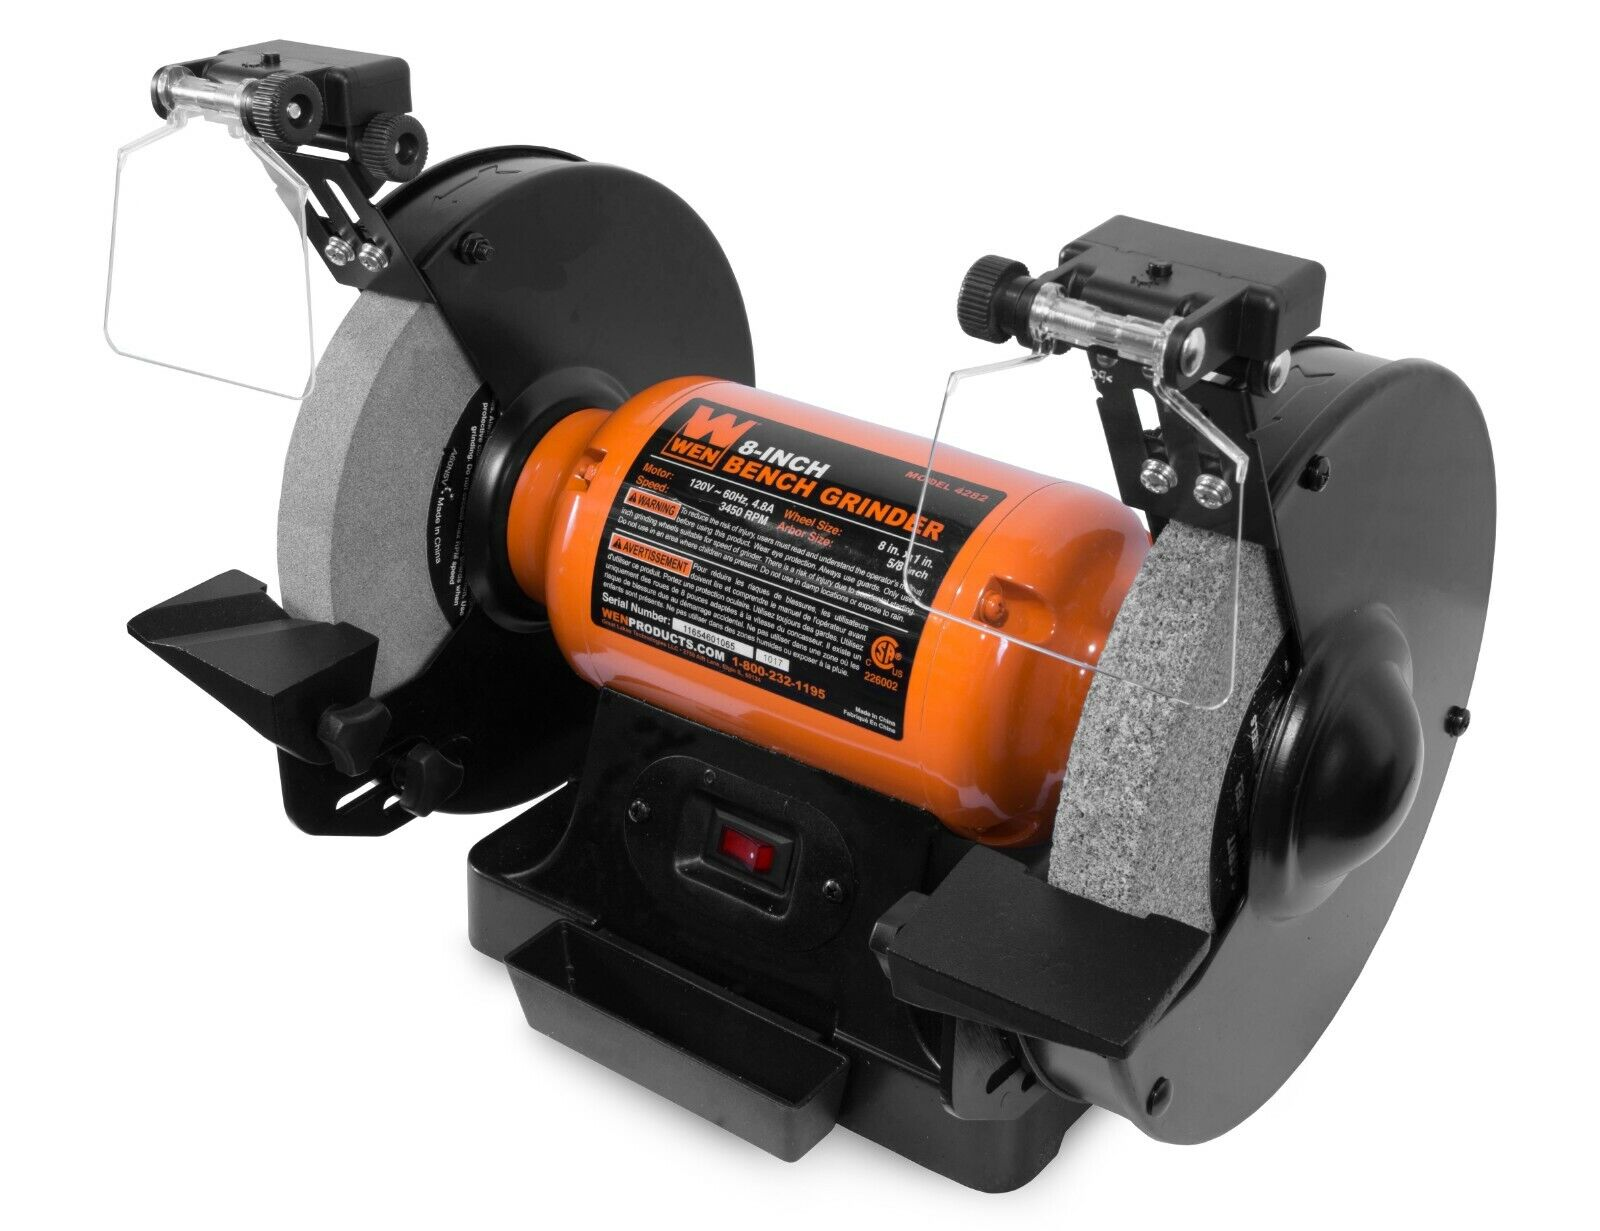 4.8-Amp 8-Inch Bench Grinder with Led Work Lights and Quench